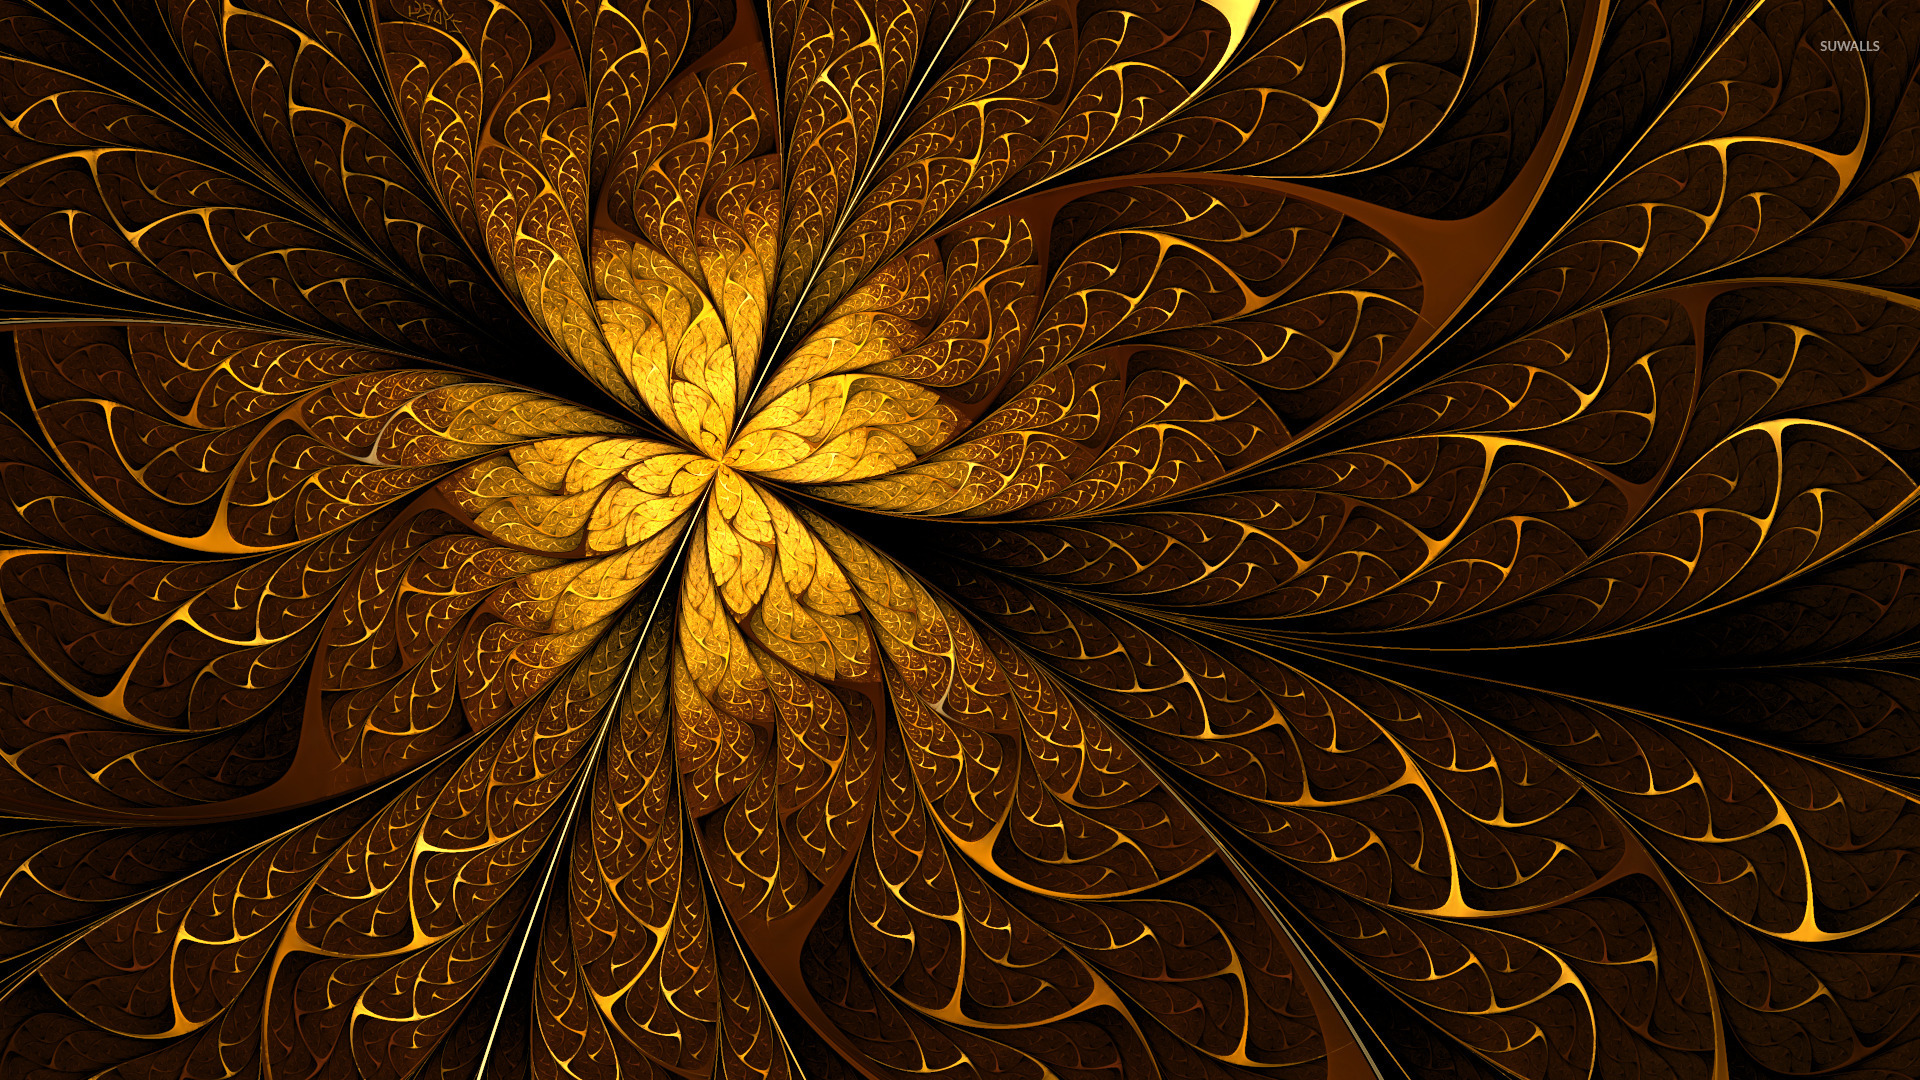 Golden orbs wallpaper - 3D wallpapers - #45761